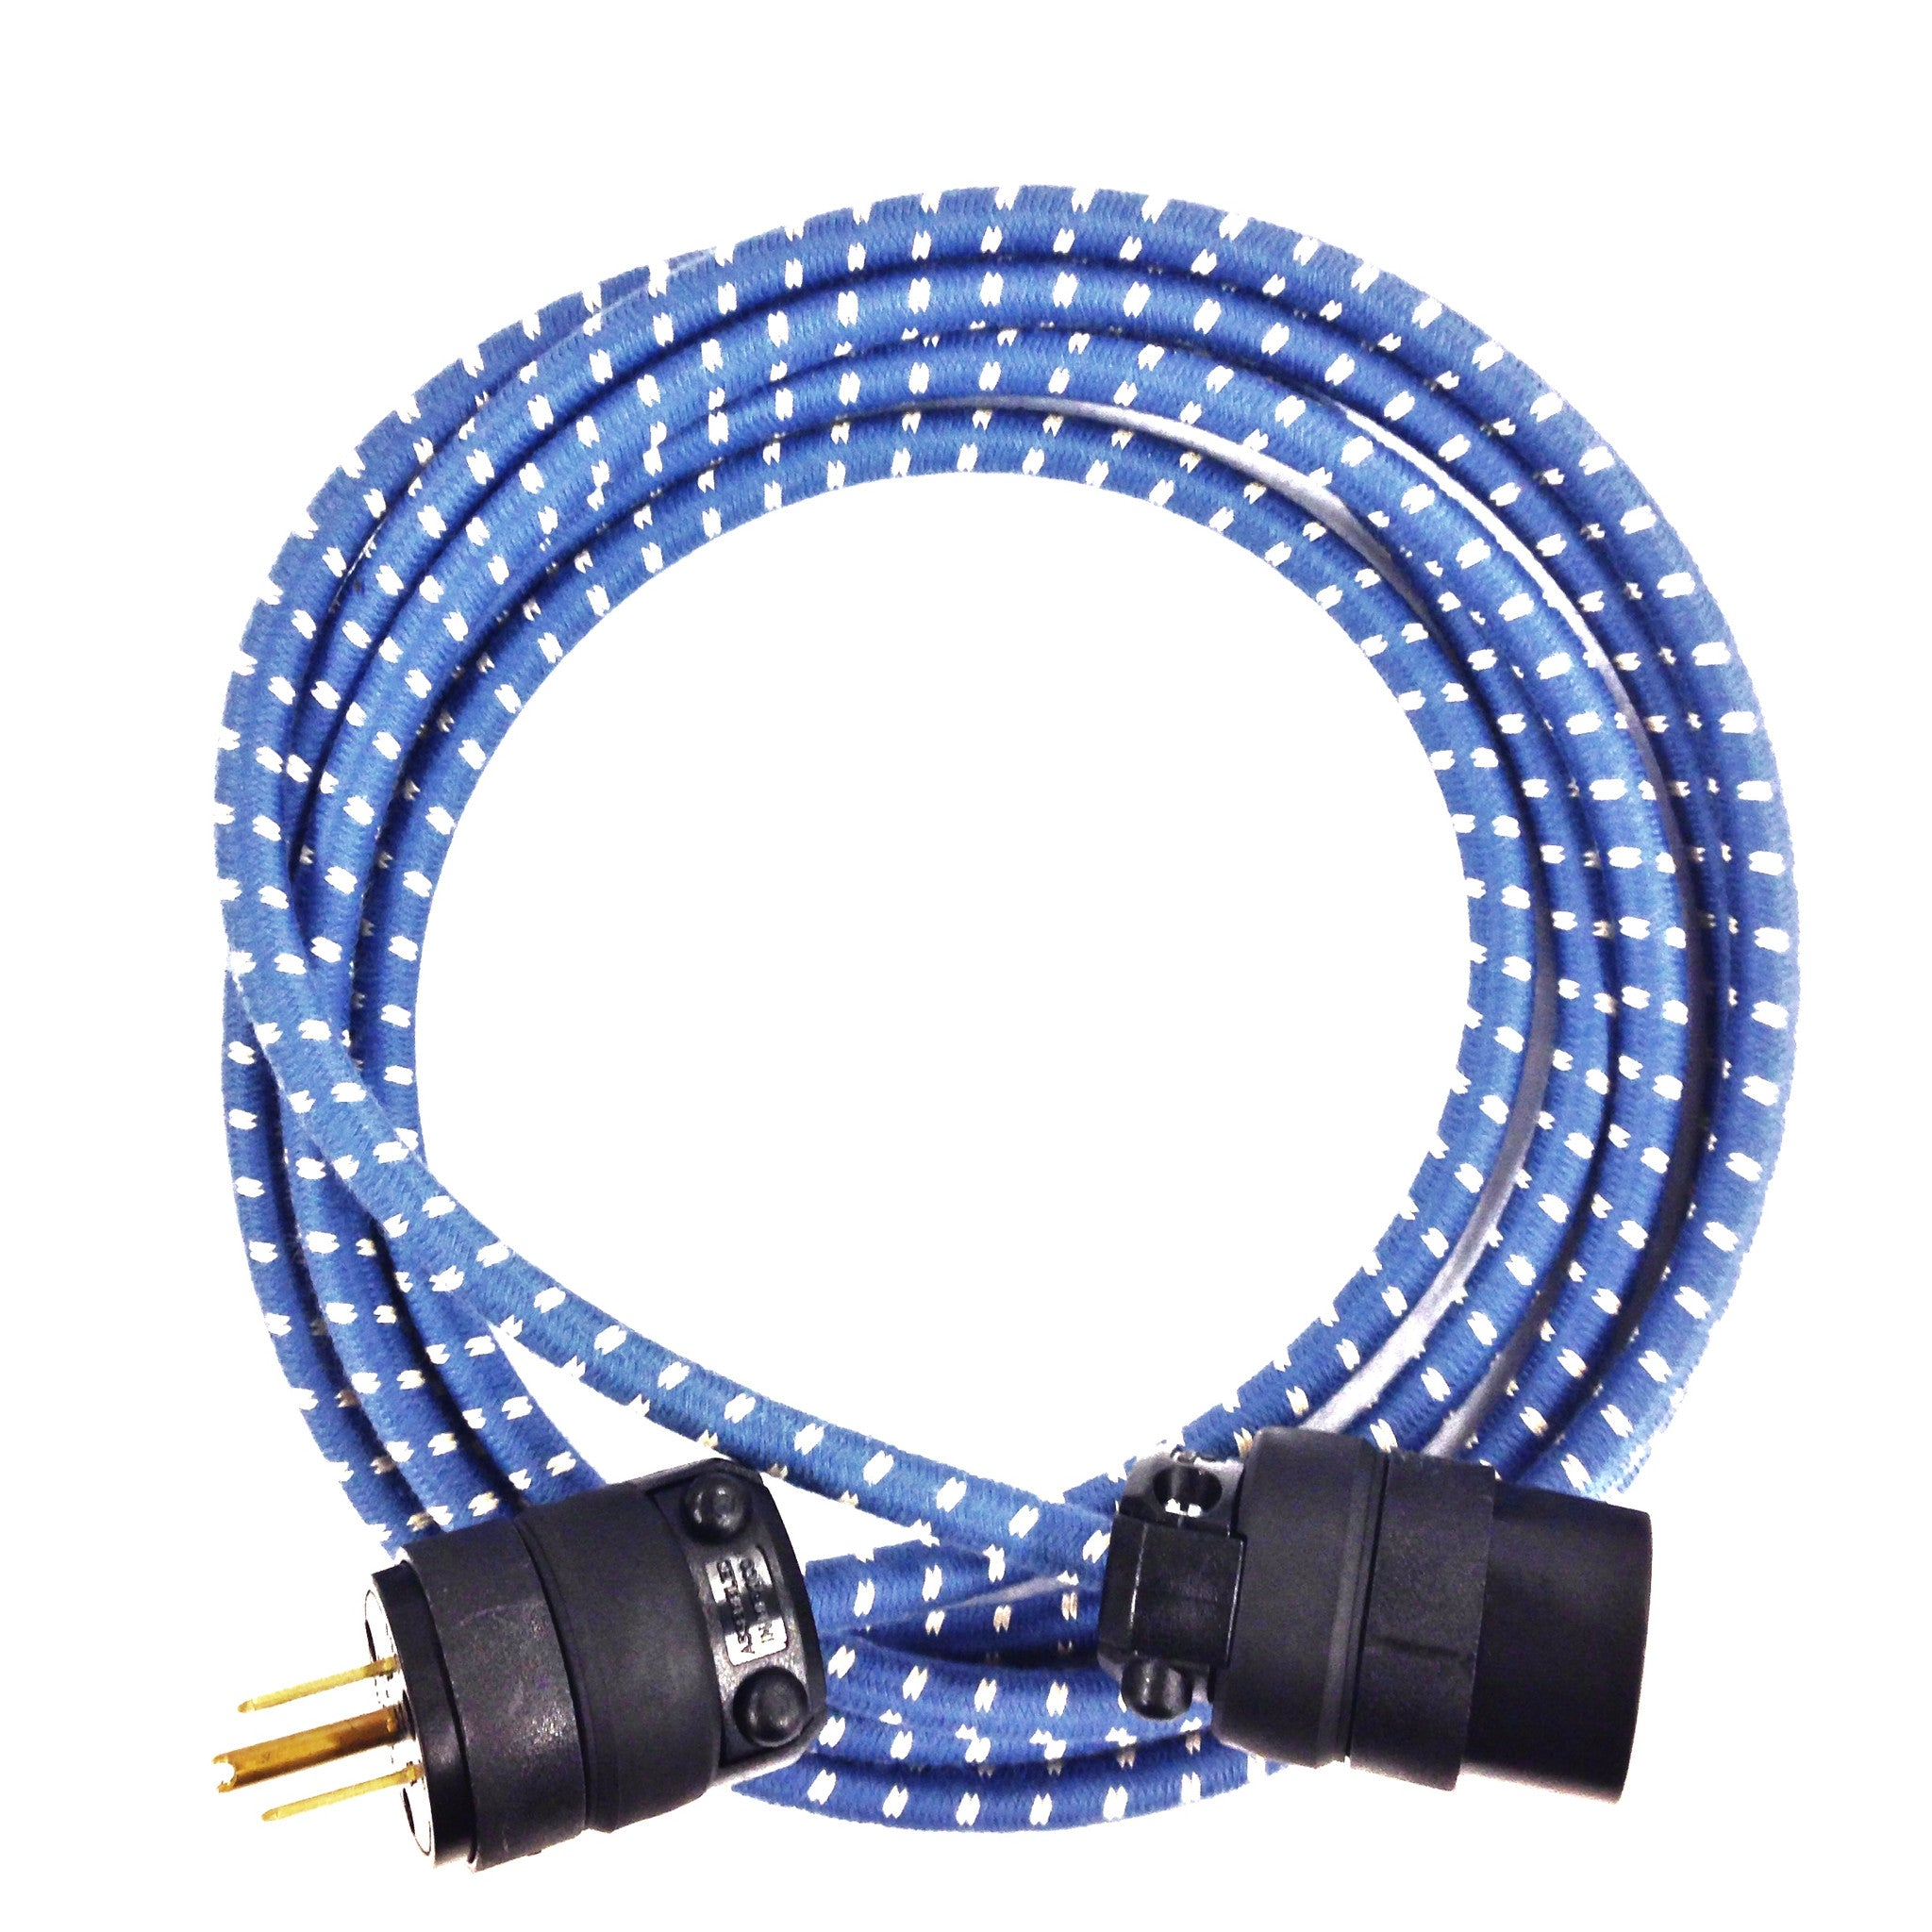 10' Extō Single Outlet Extension Cord - Solstice Blue & Natural White